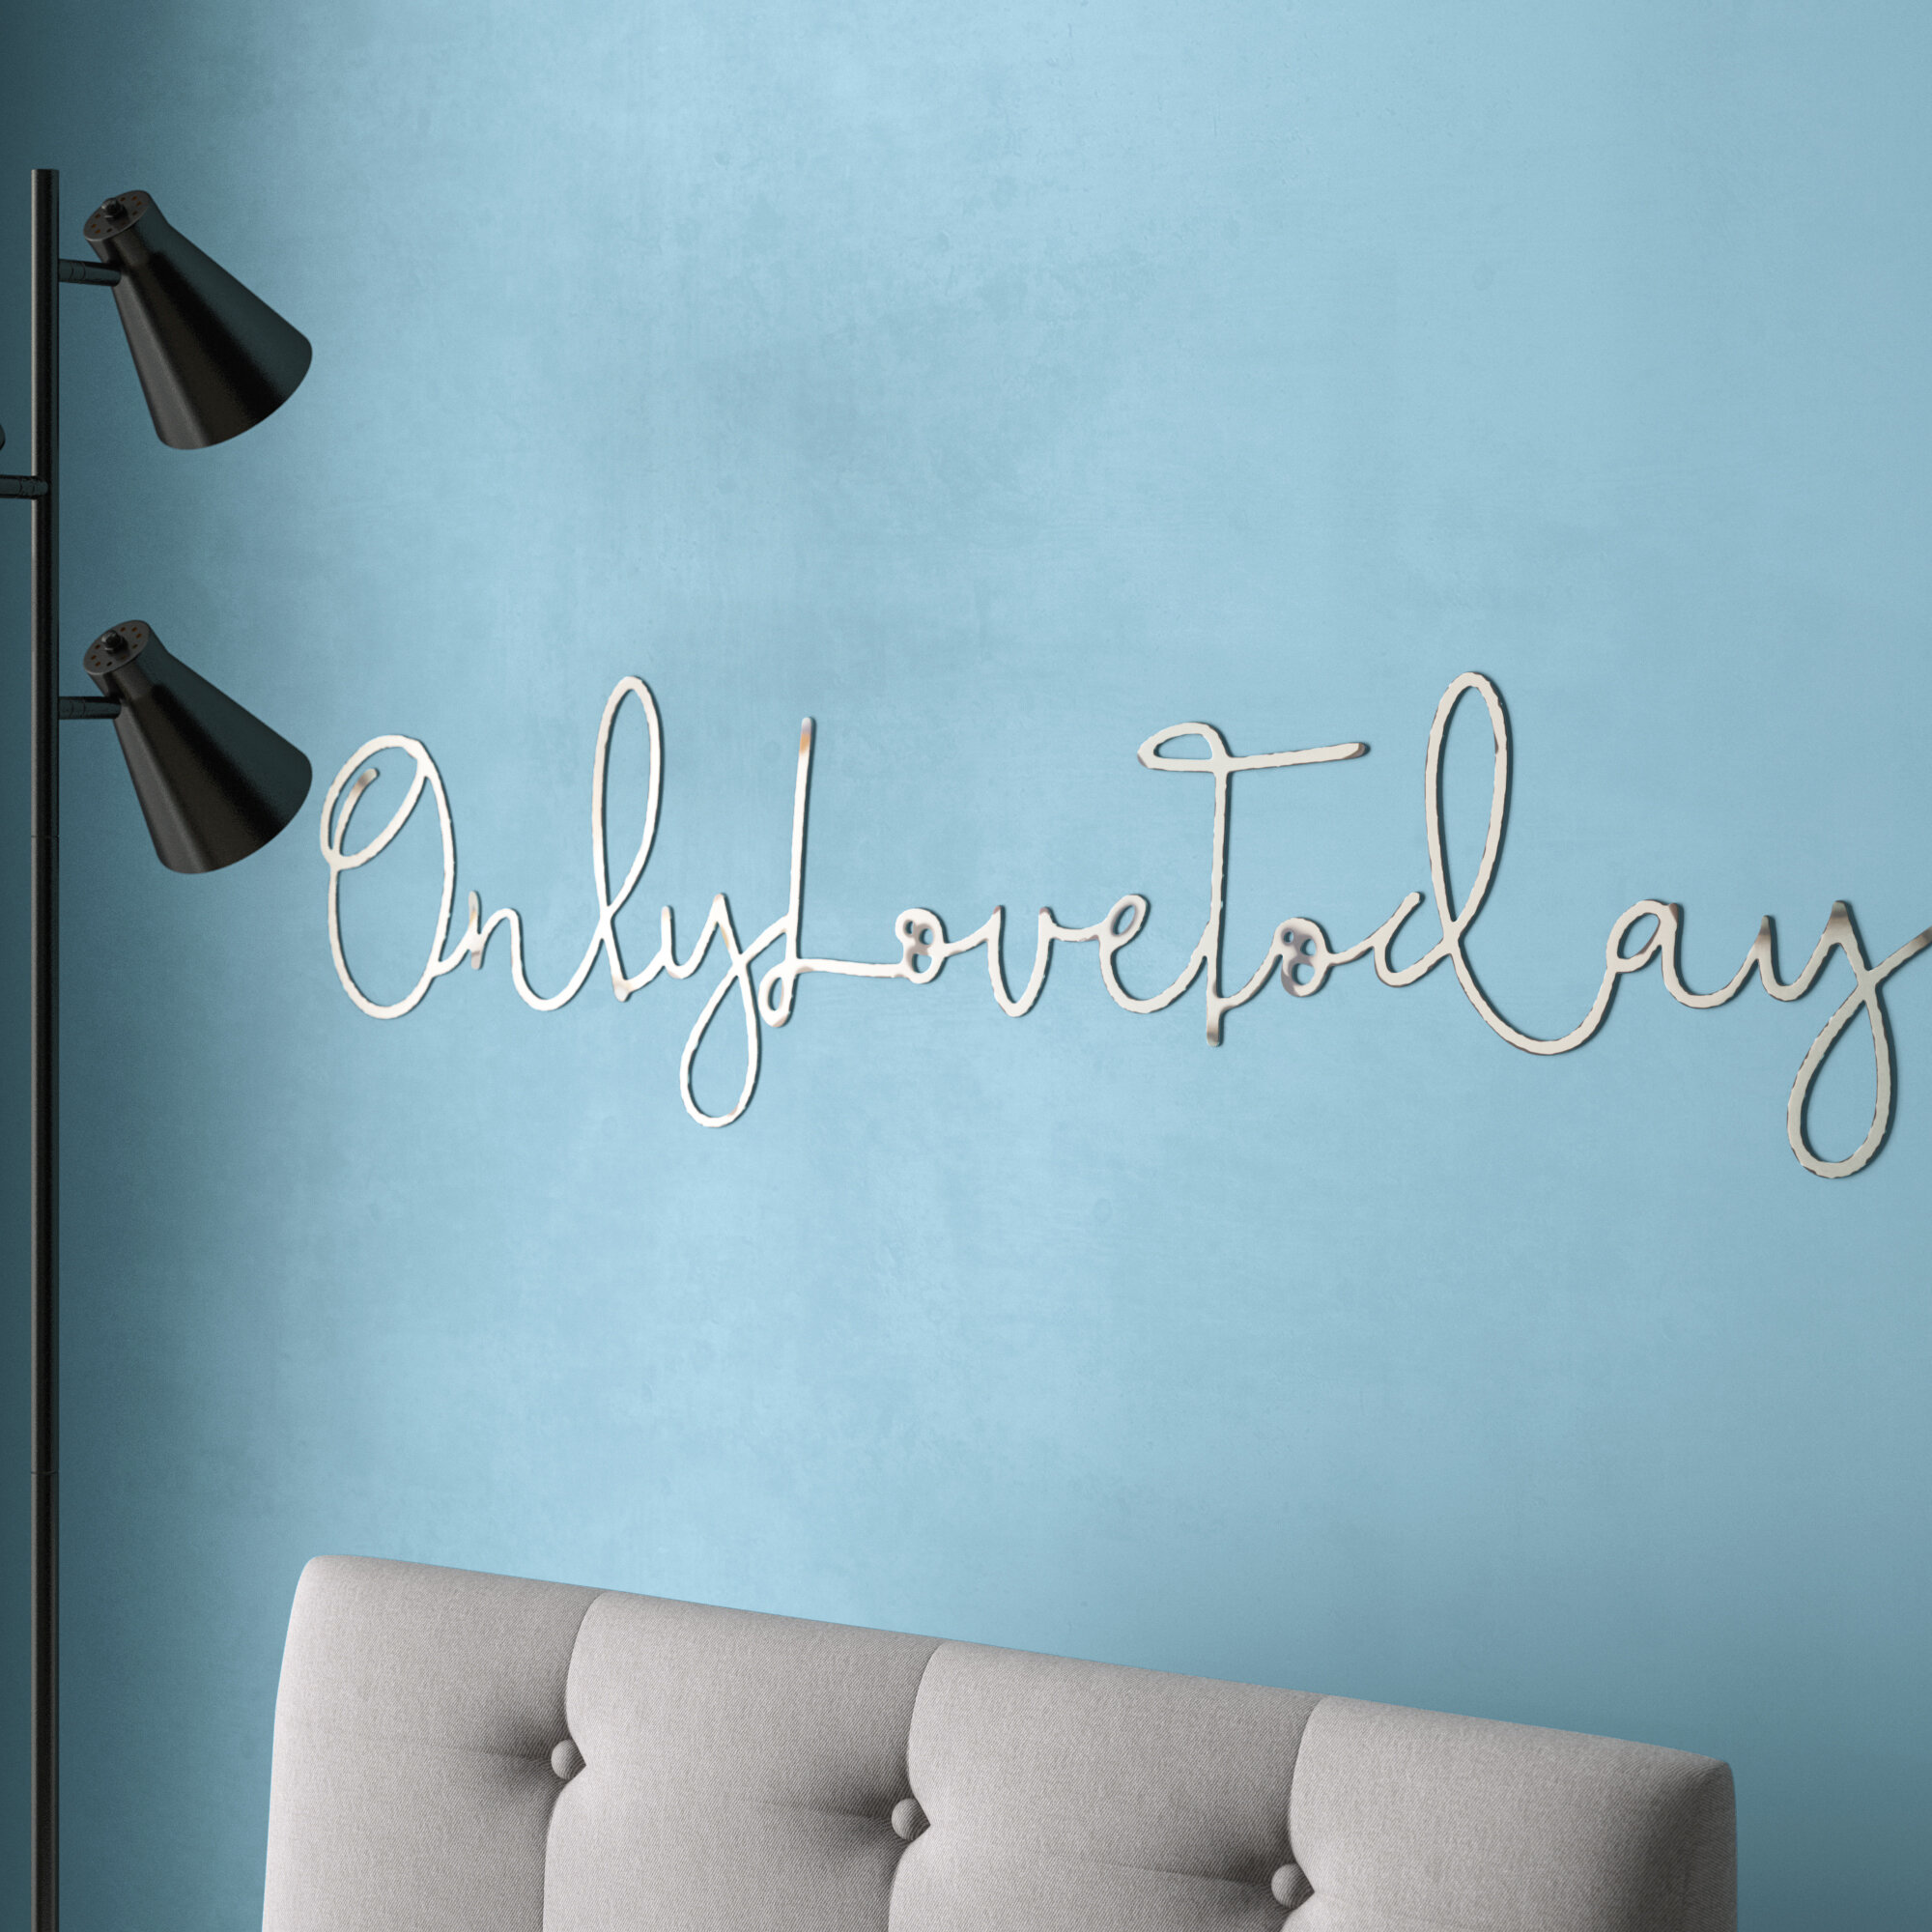 Gallery from Great Wall Decor Names Site @house2homegoods.net